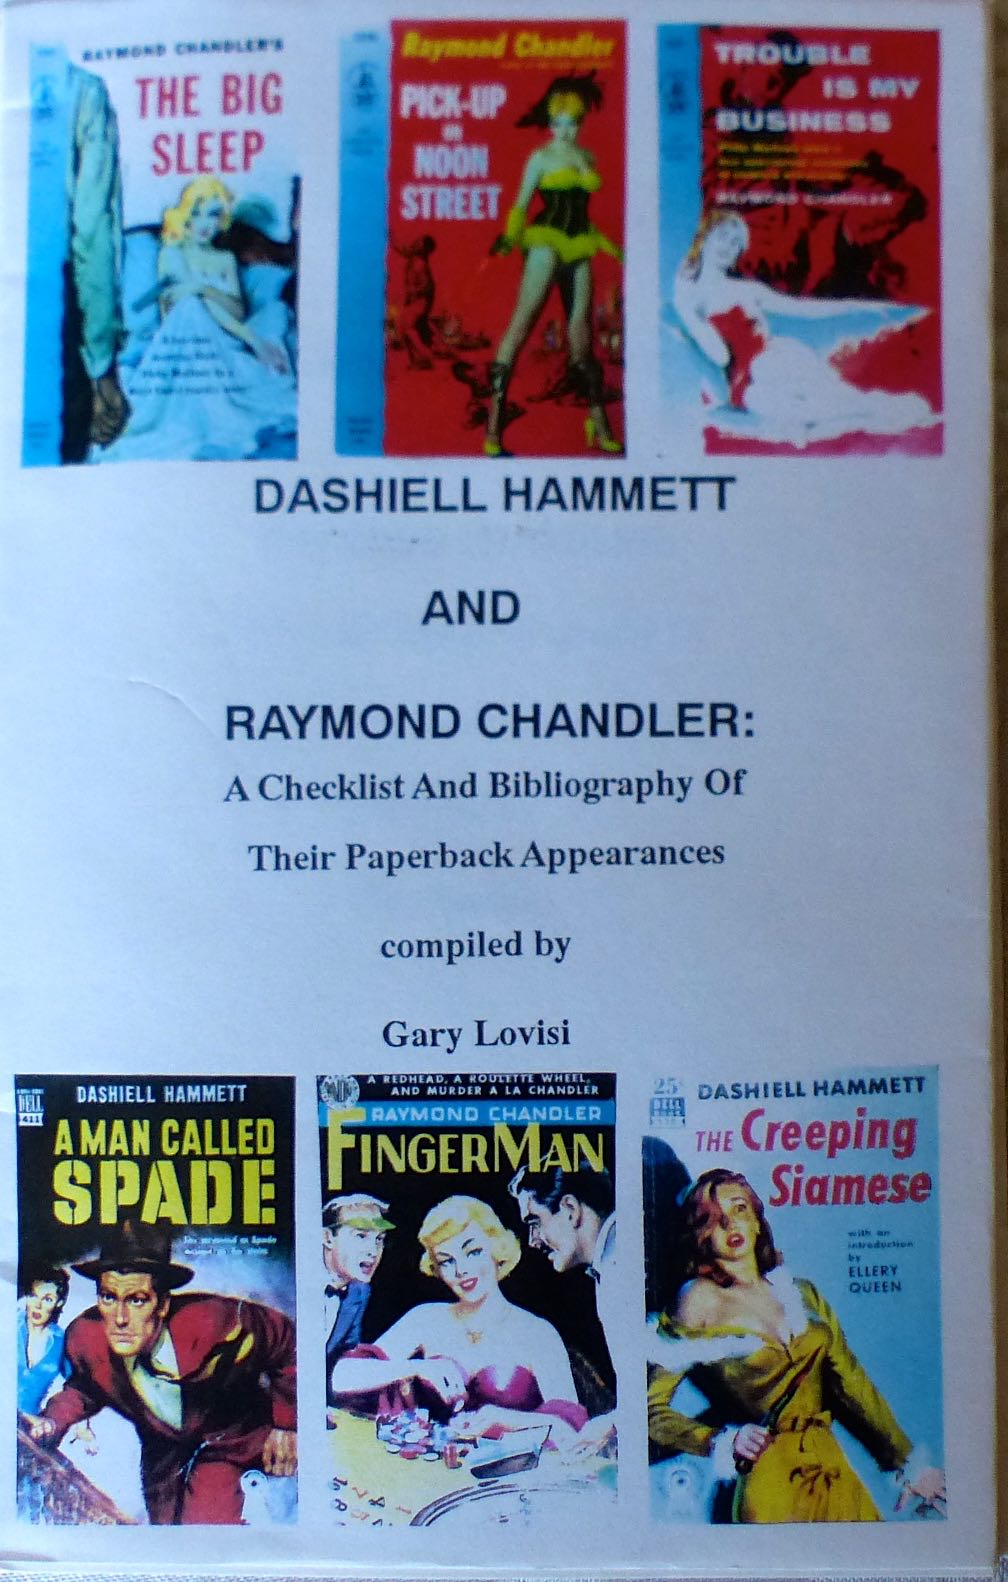 Dashiell Hammett and Raymond Chandler / A Checklist and Bibliography of Their Paperback Appearances